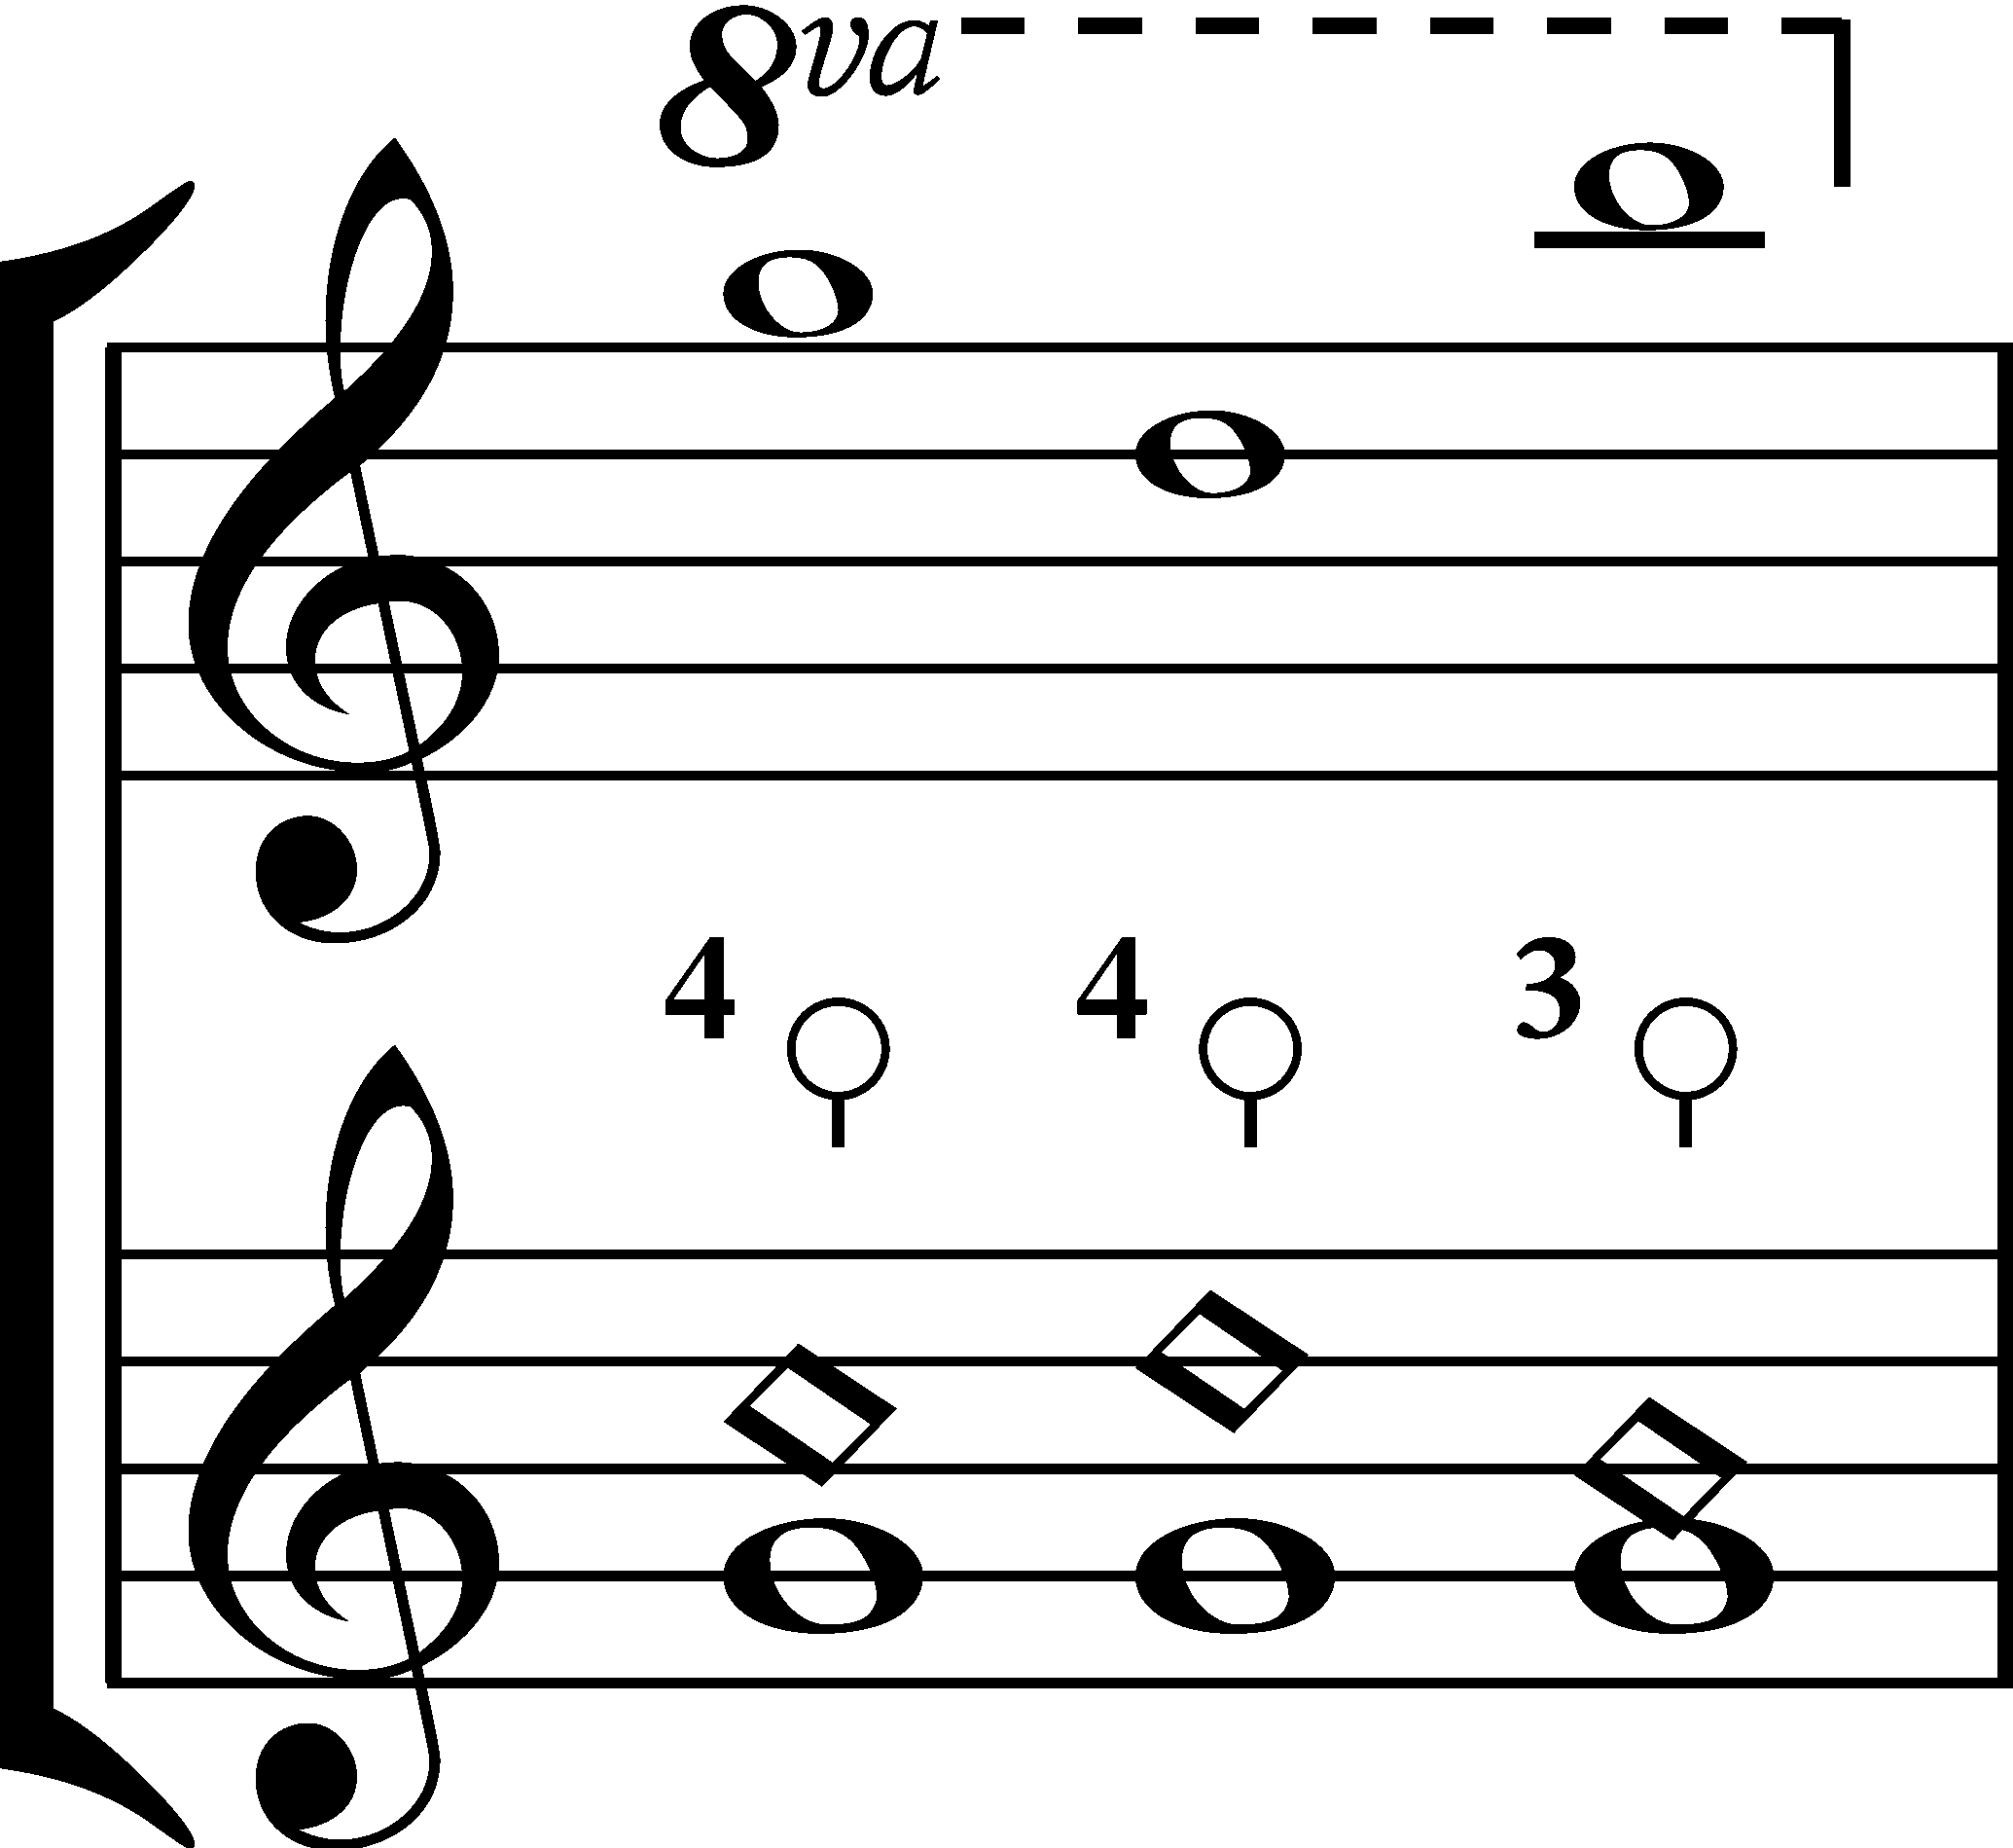 Artificial harmonic - Wikipedia